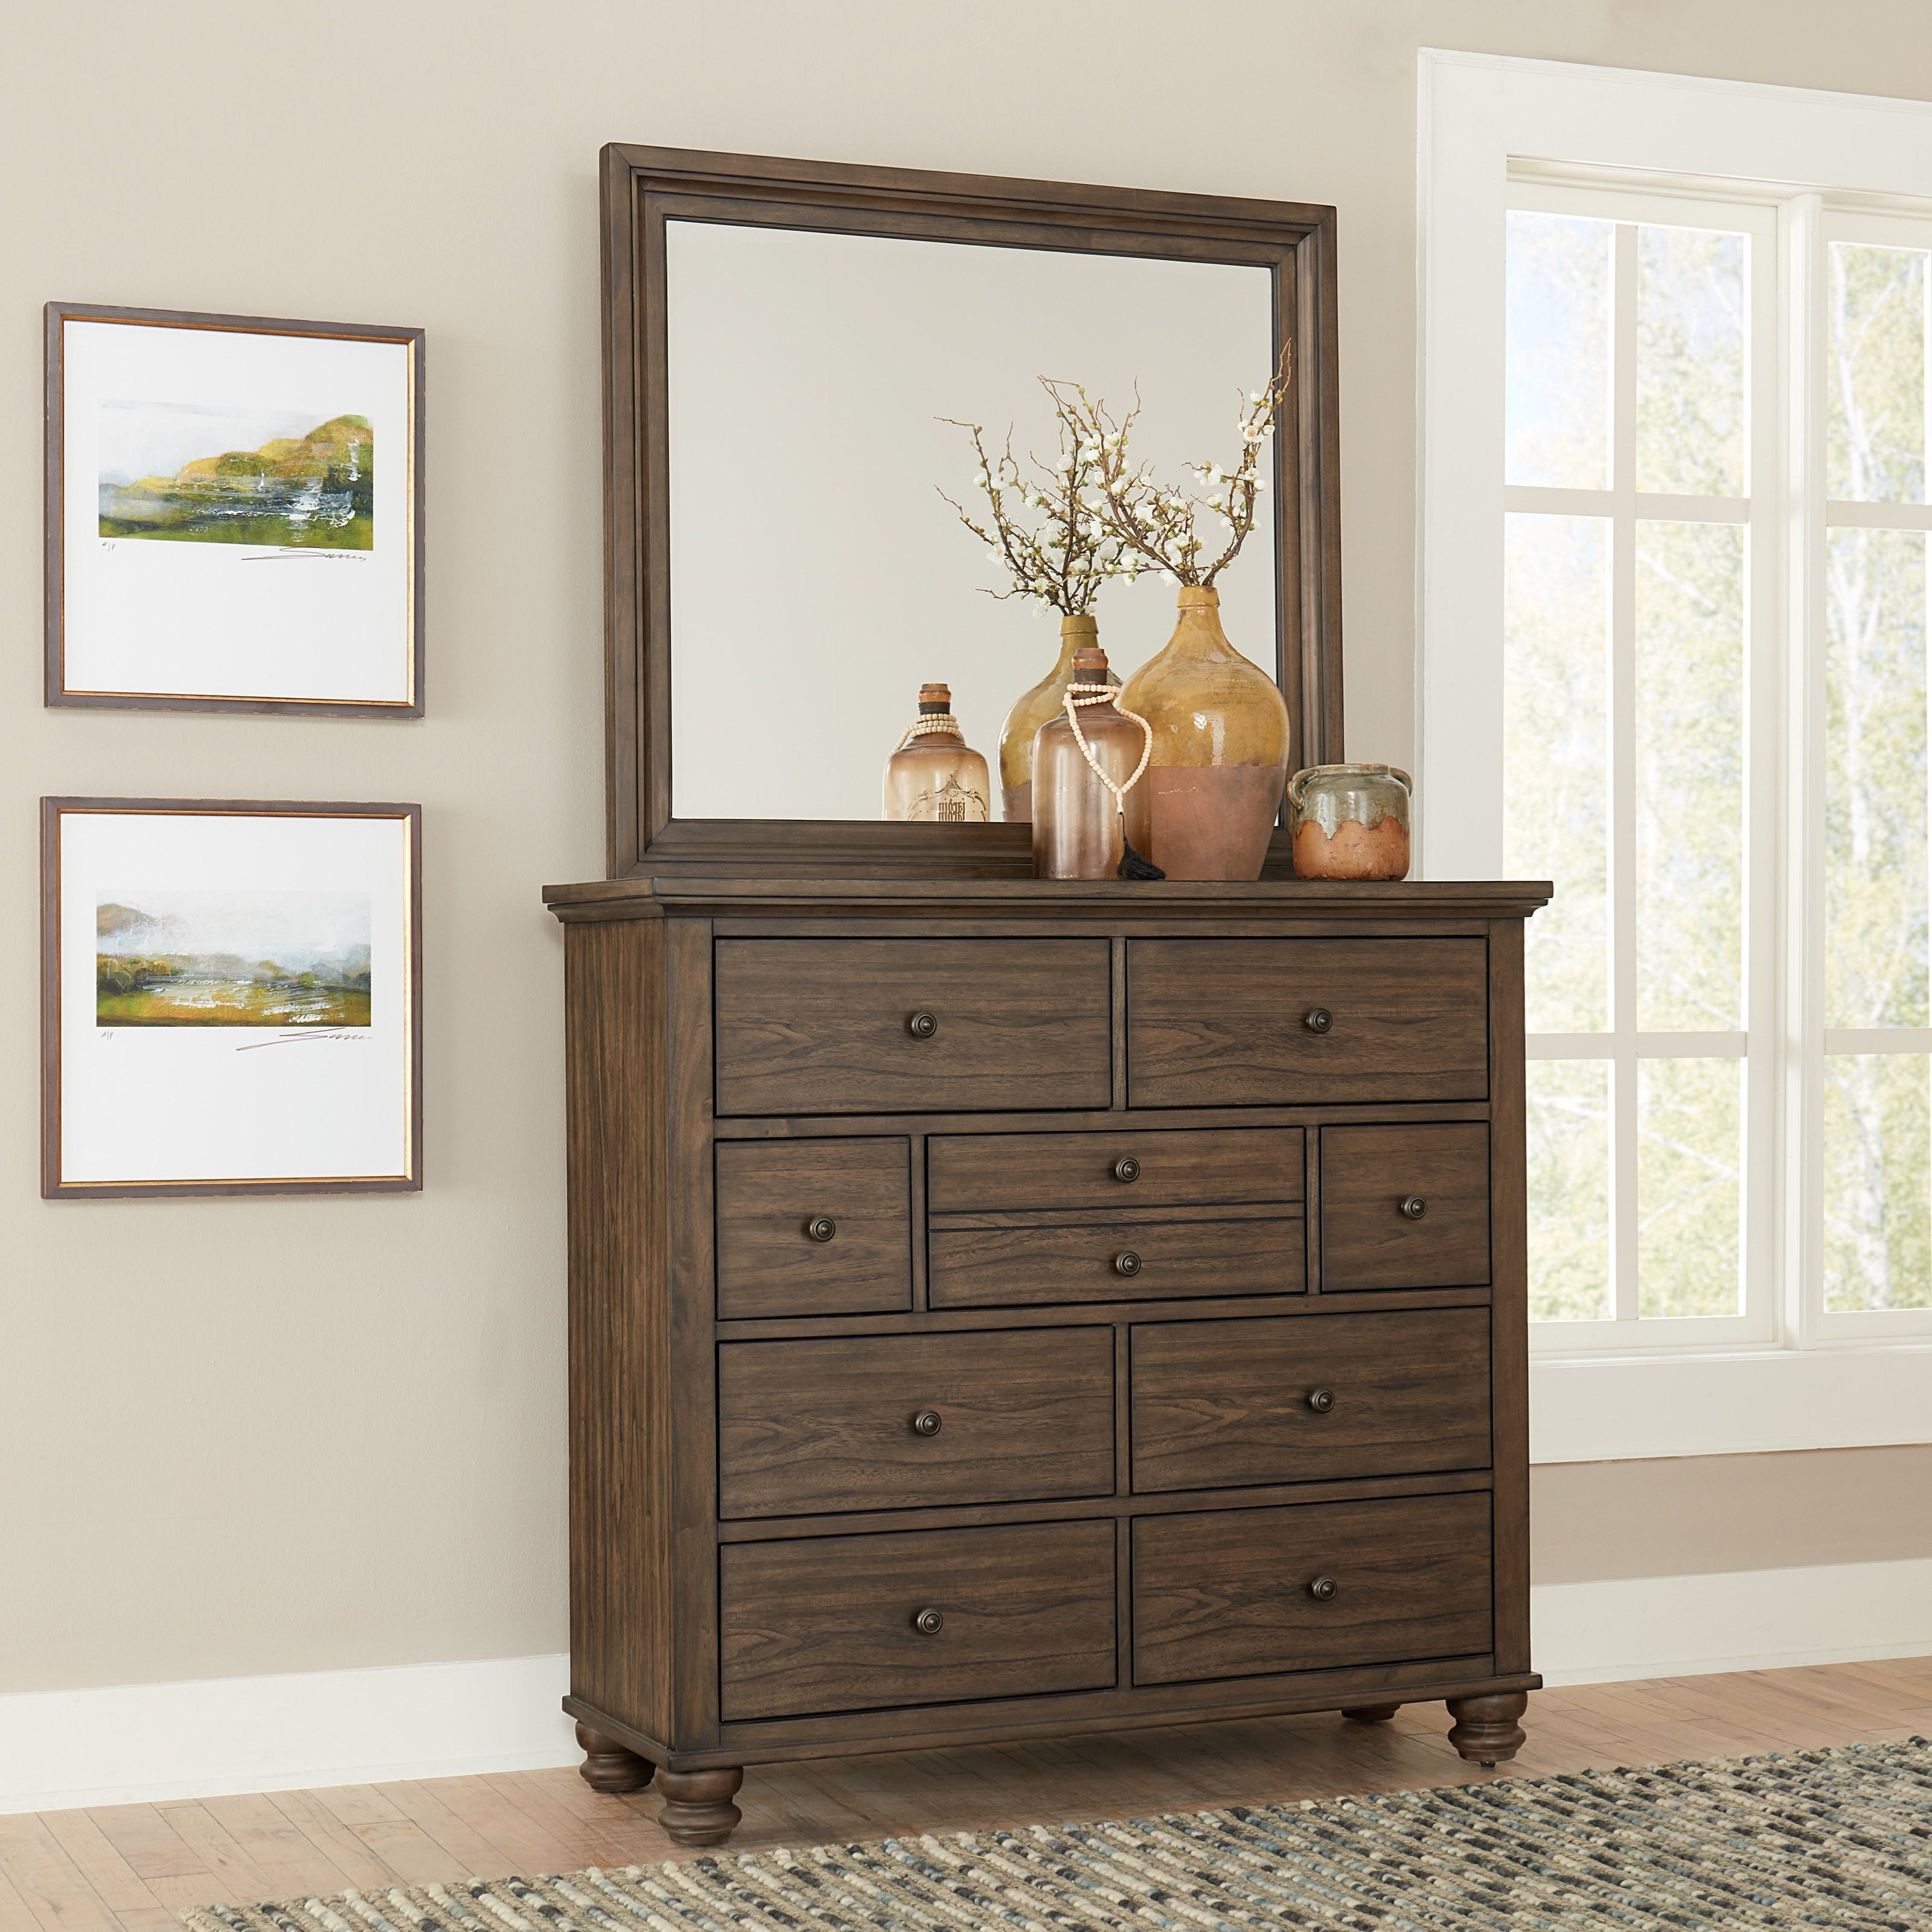 Hudson Valley Chest of Drawers and Mirror Combination by Aspenhome at Baer's Furniture